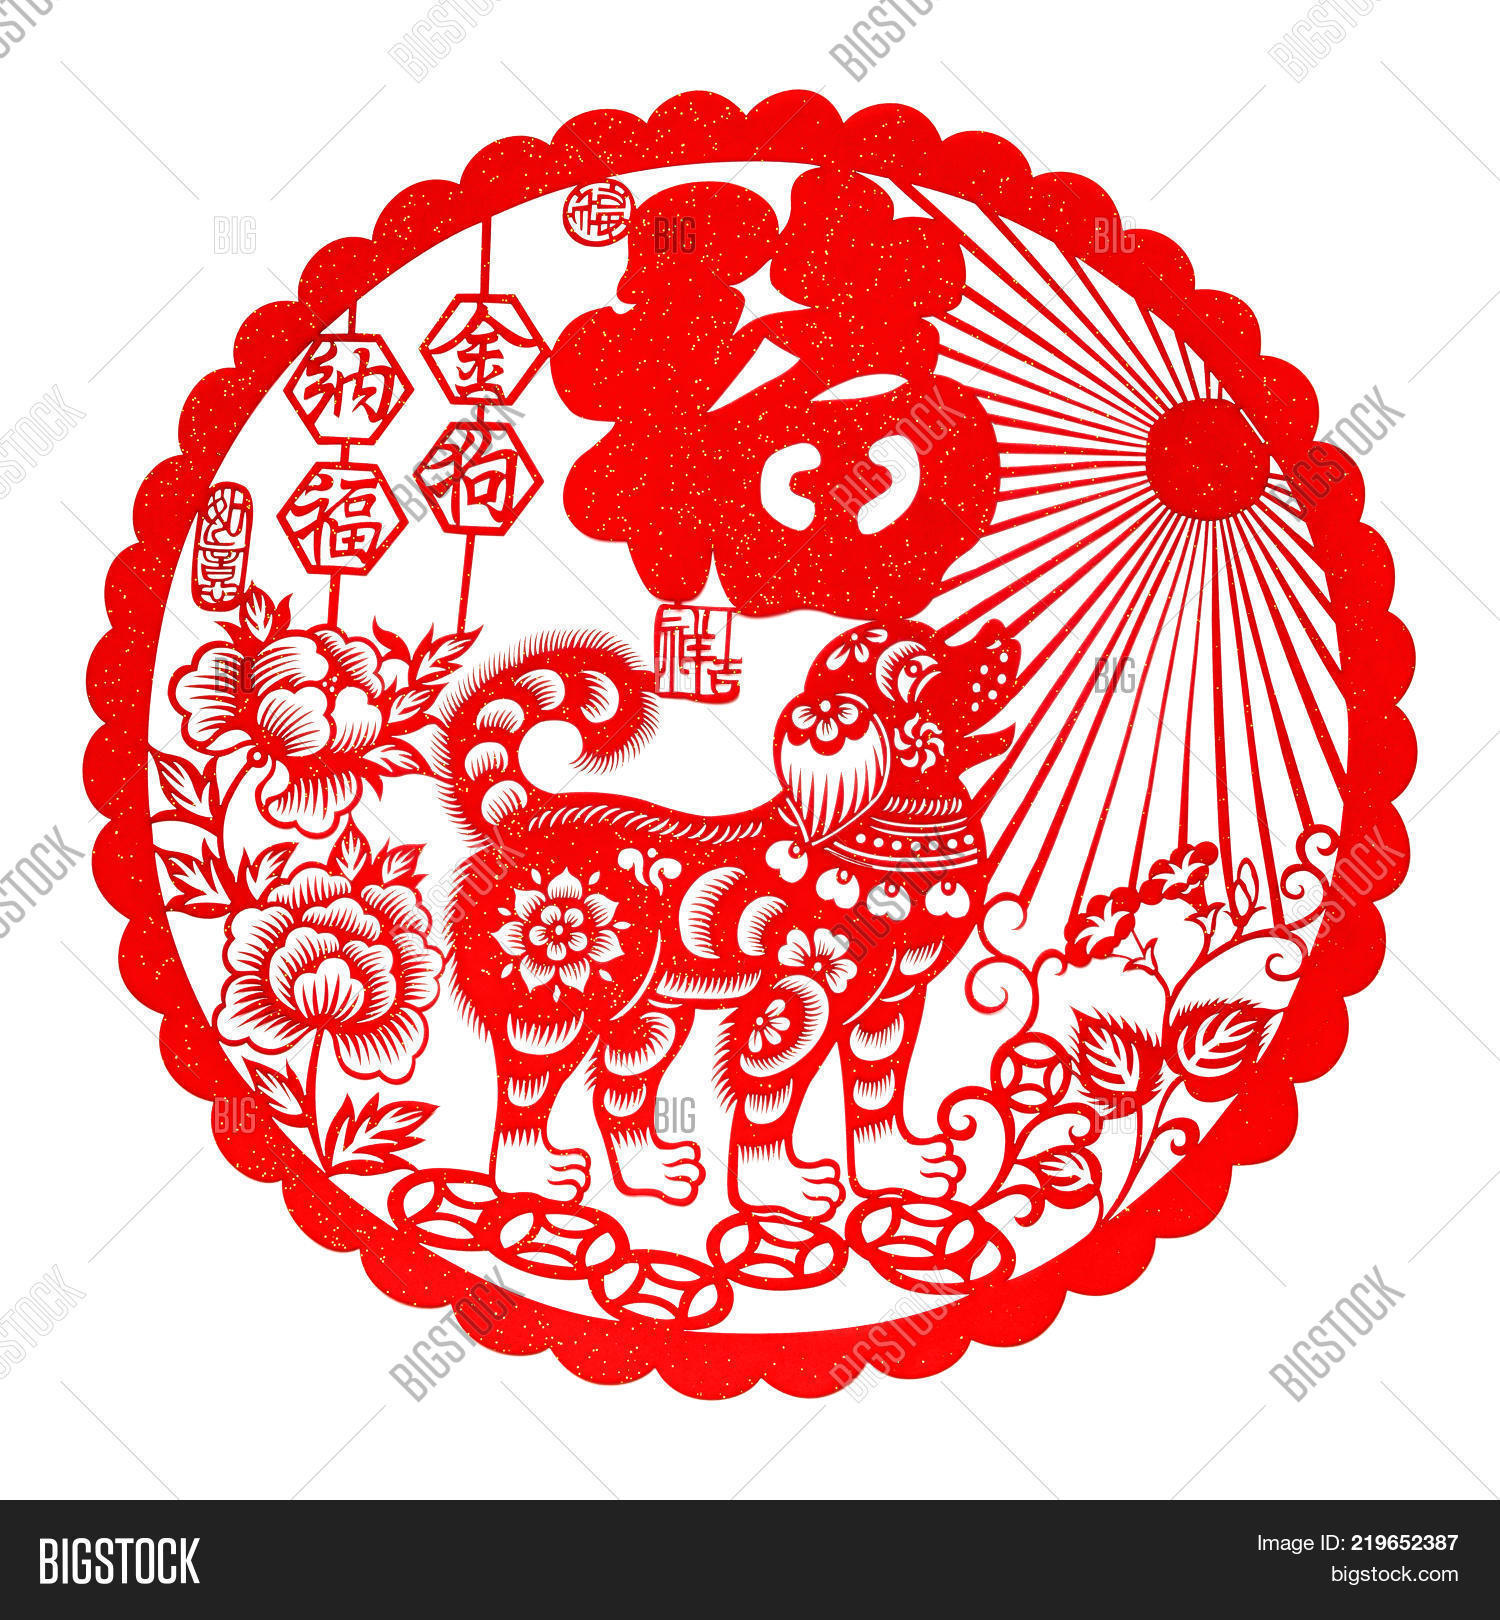 Red Flat Paper Cut On Image Photo Free Trial Bigstock